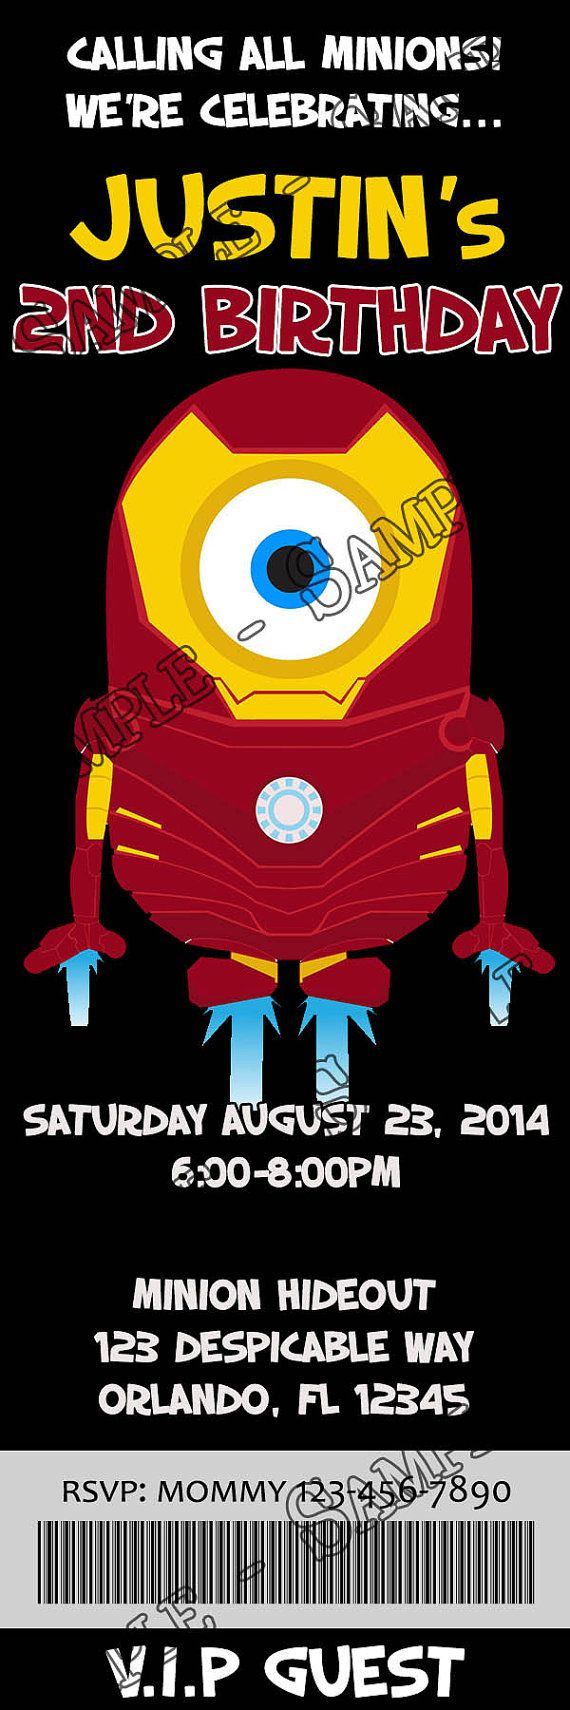 Google image result for http image spreadshirt com image server v1 - Avengers Minions Birthday Party Ticket By Cydesigncompany On Etsy